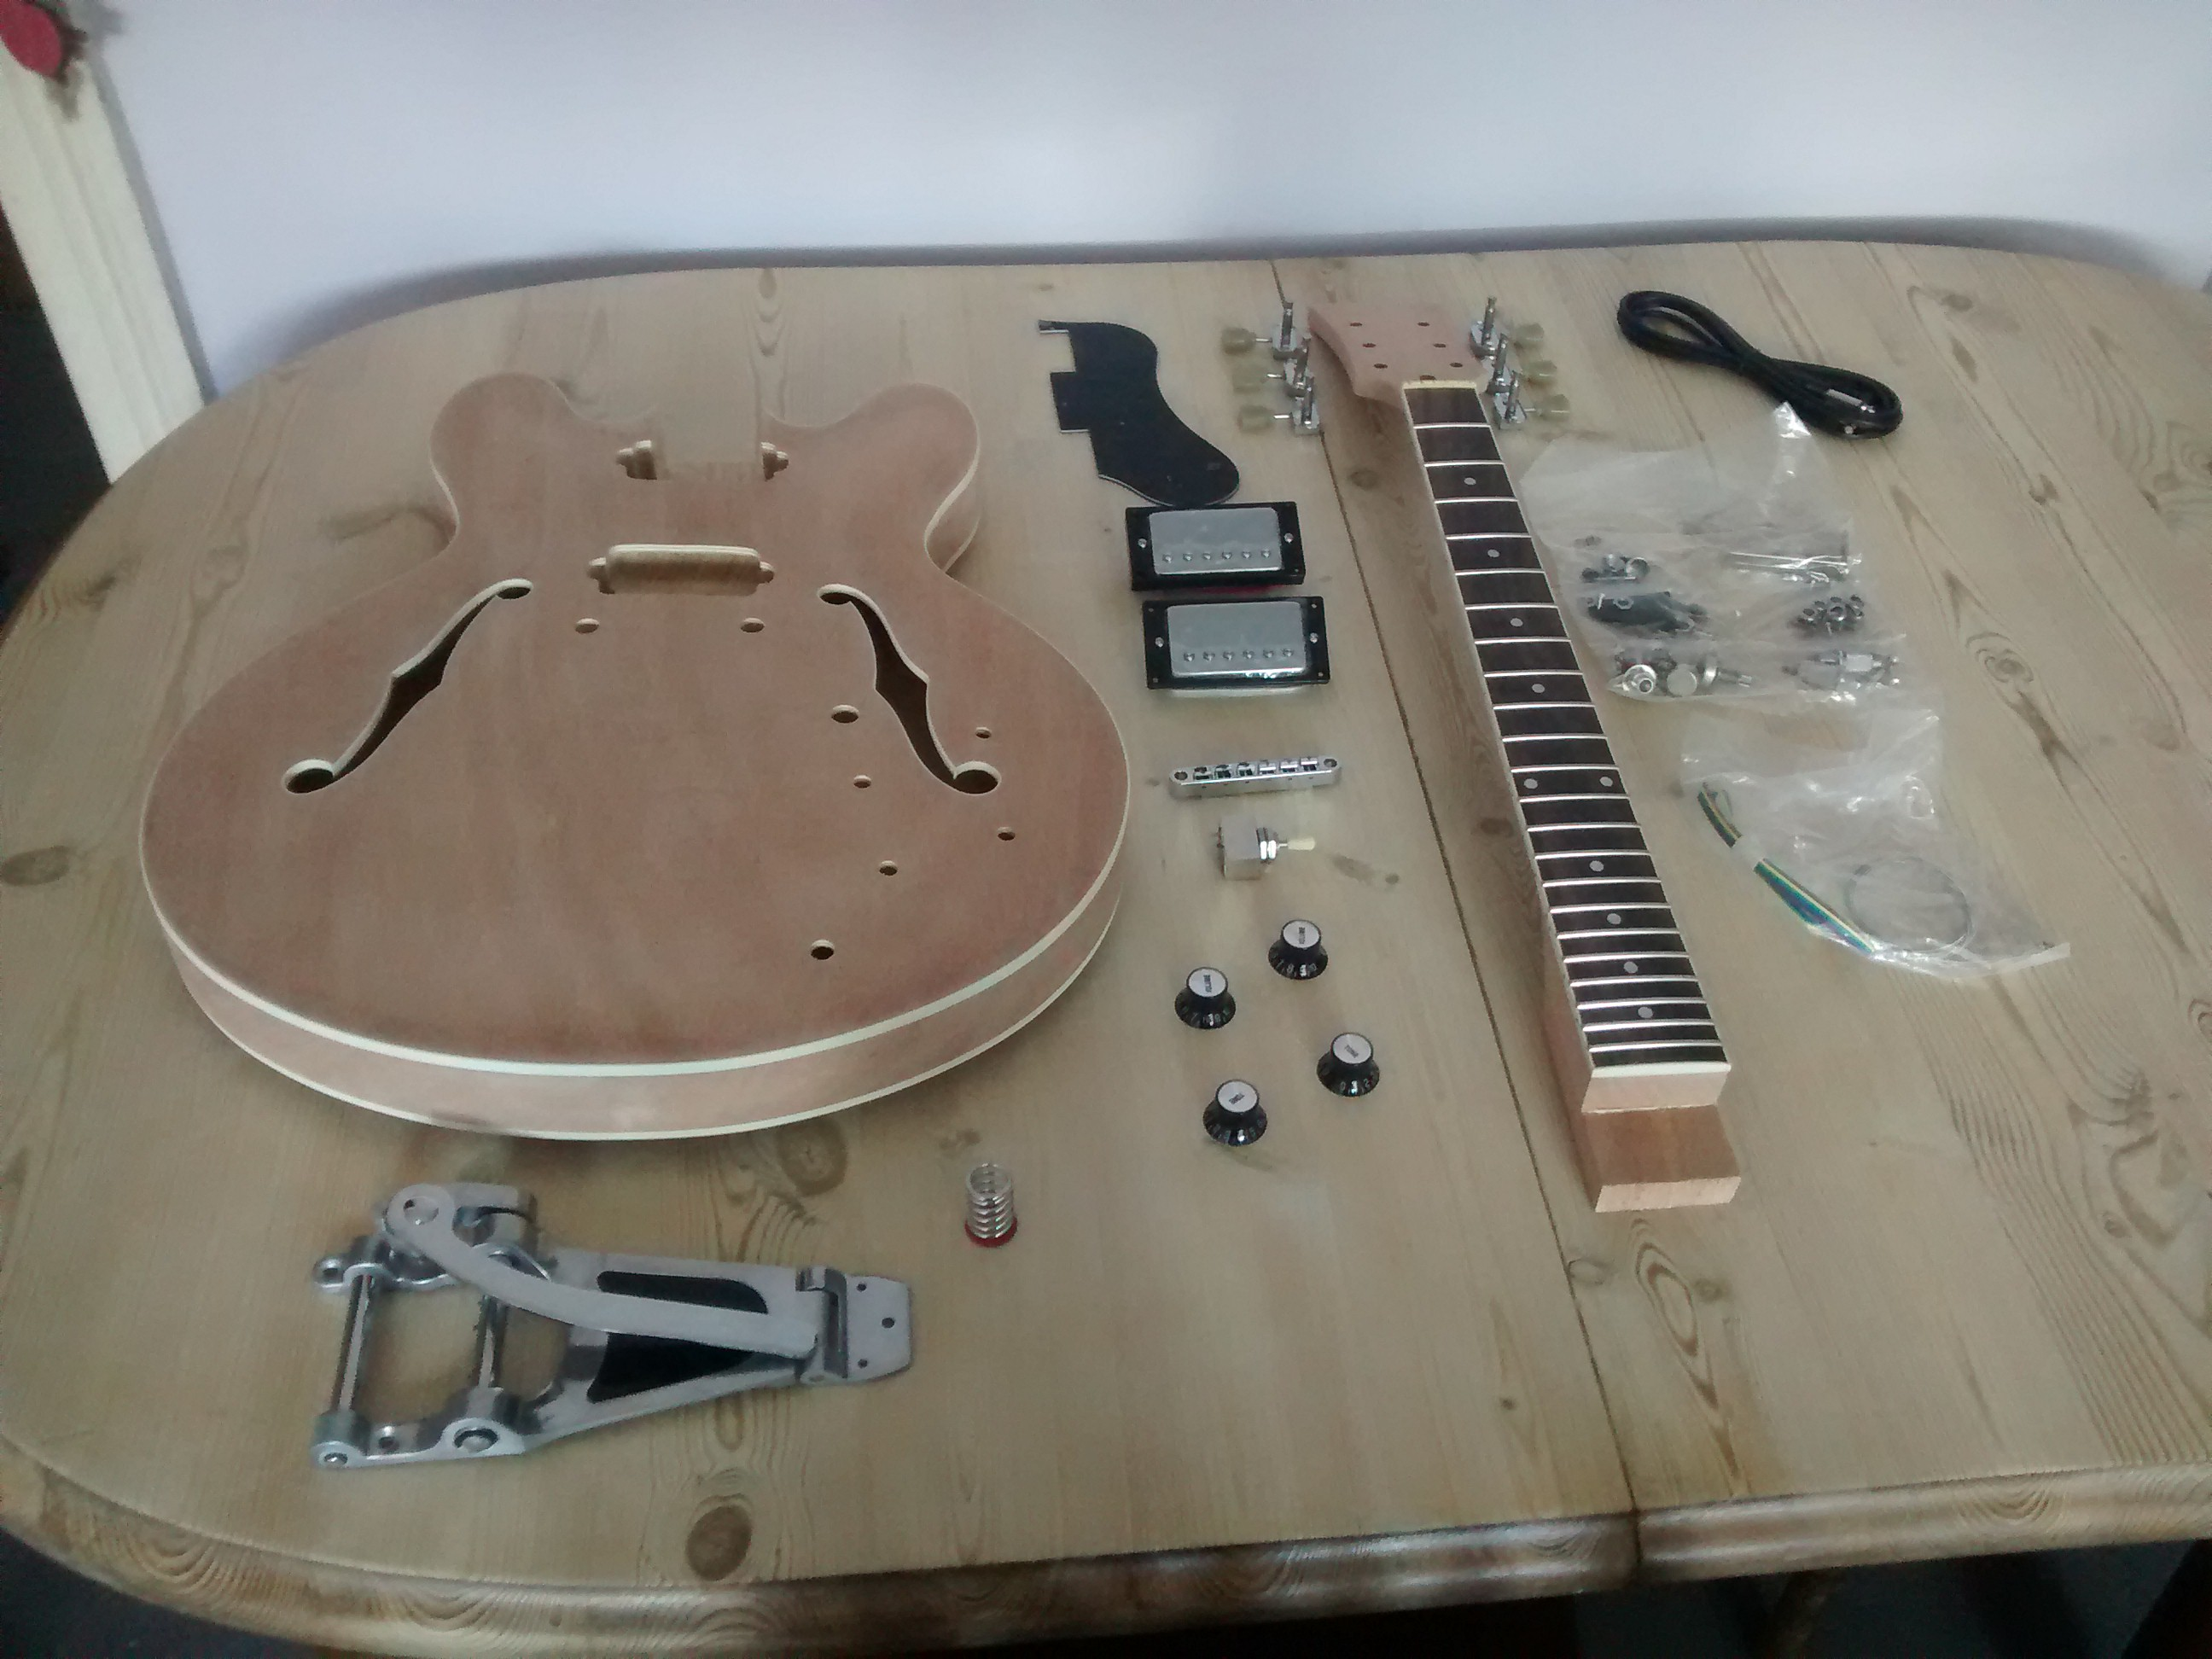 DIY guitar project: day 1